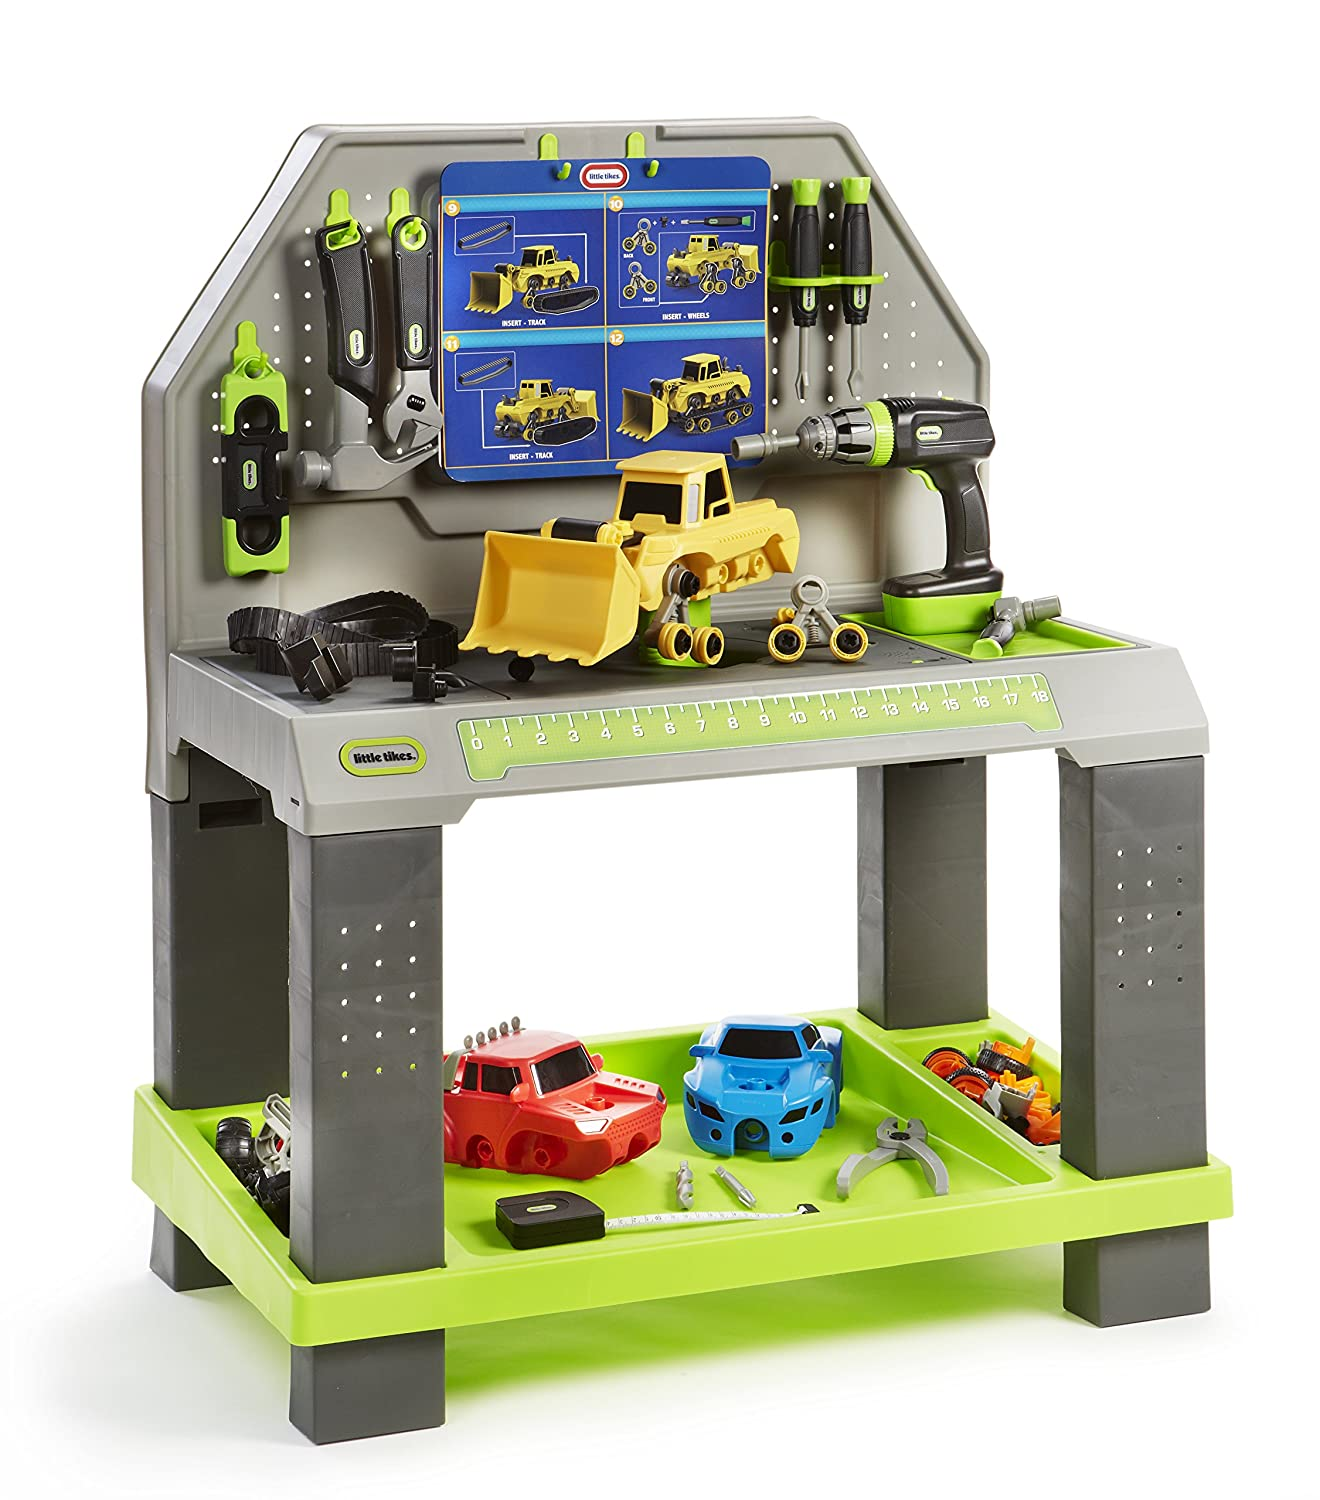 Top 9 Best Kids Toy Tool Bench Reviews in 2021 16